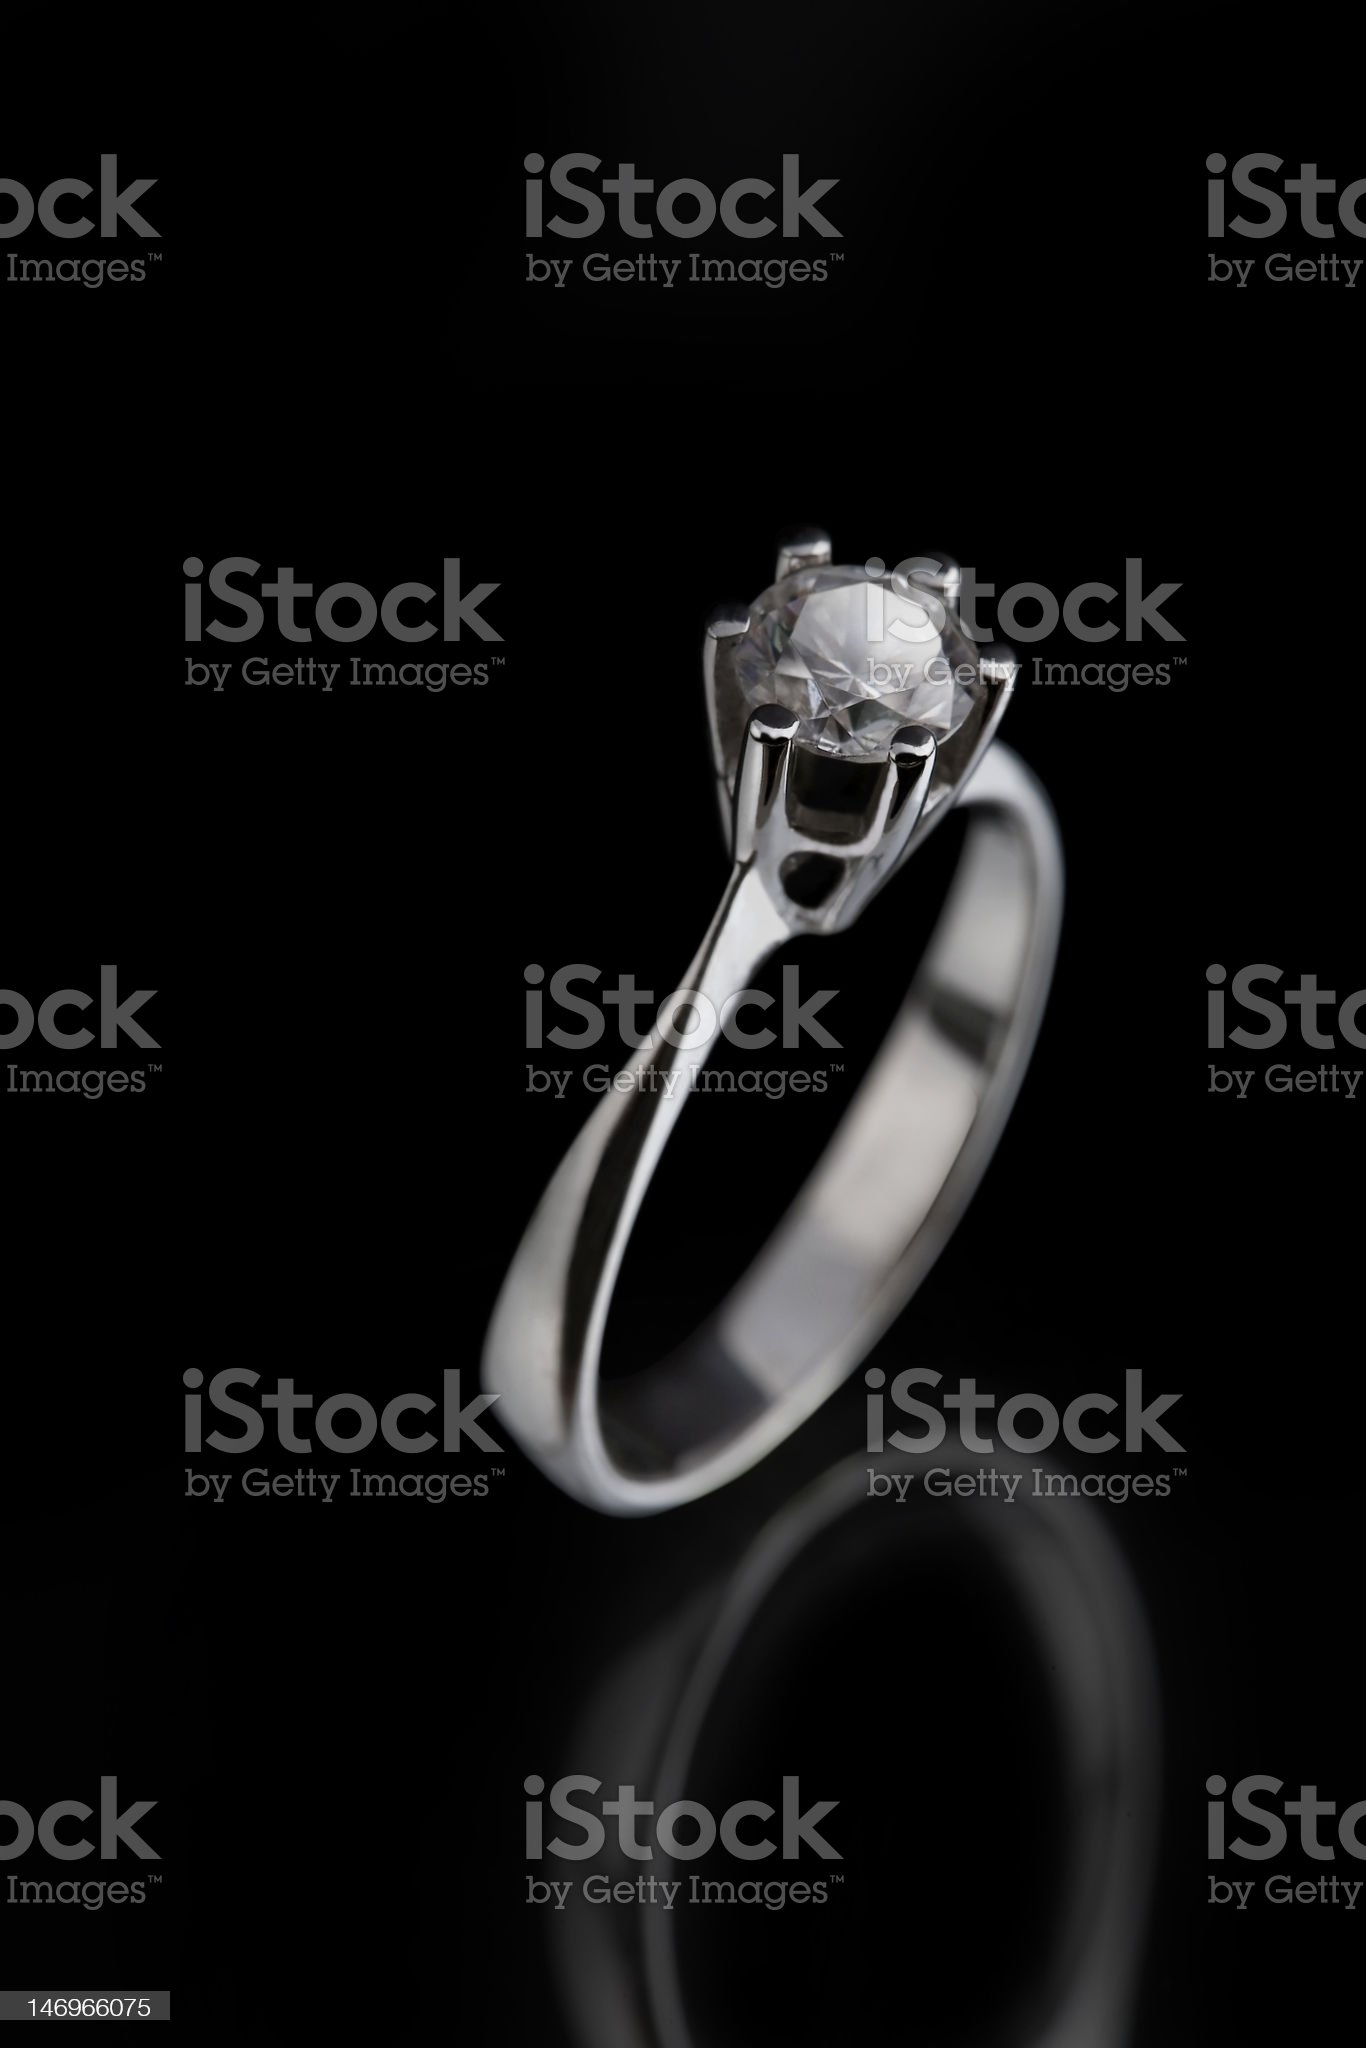 solitaire royalty-free stock photo